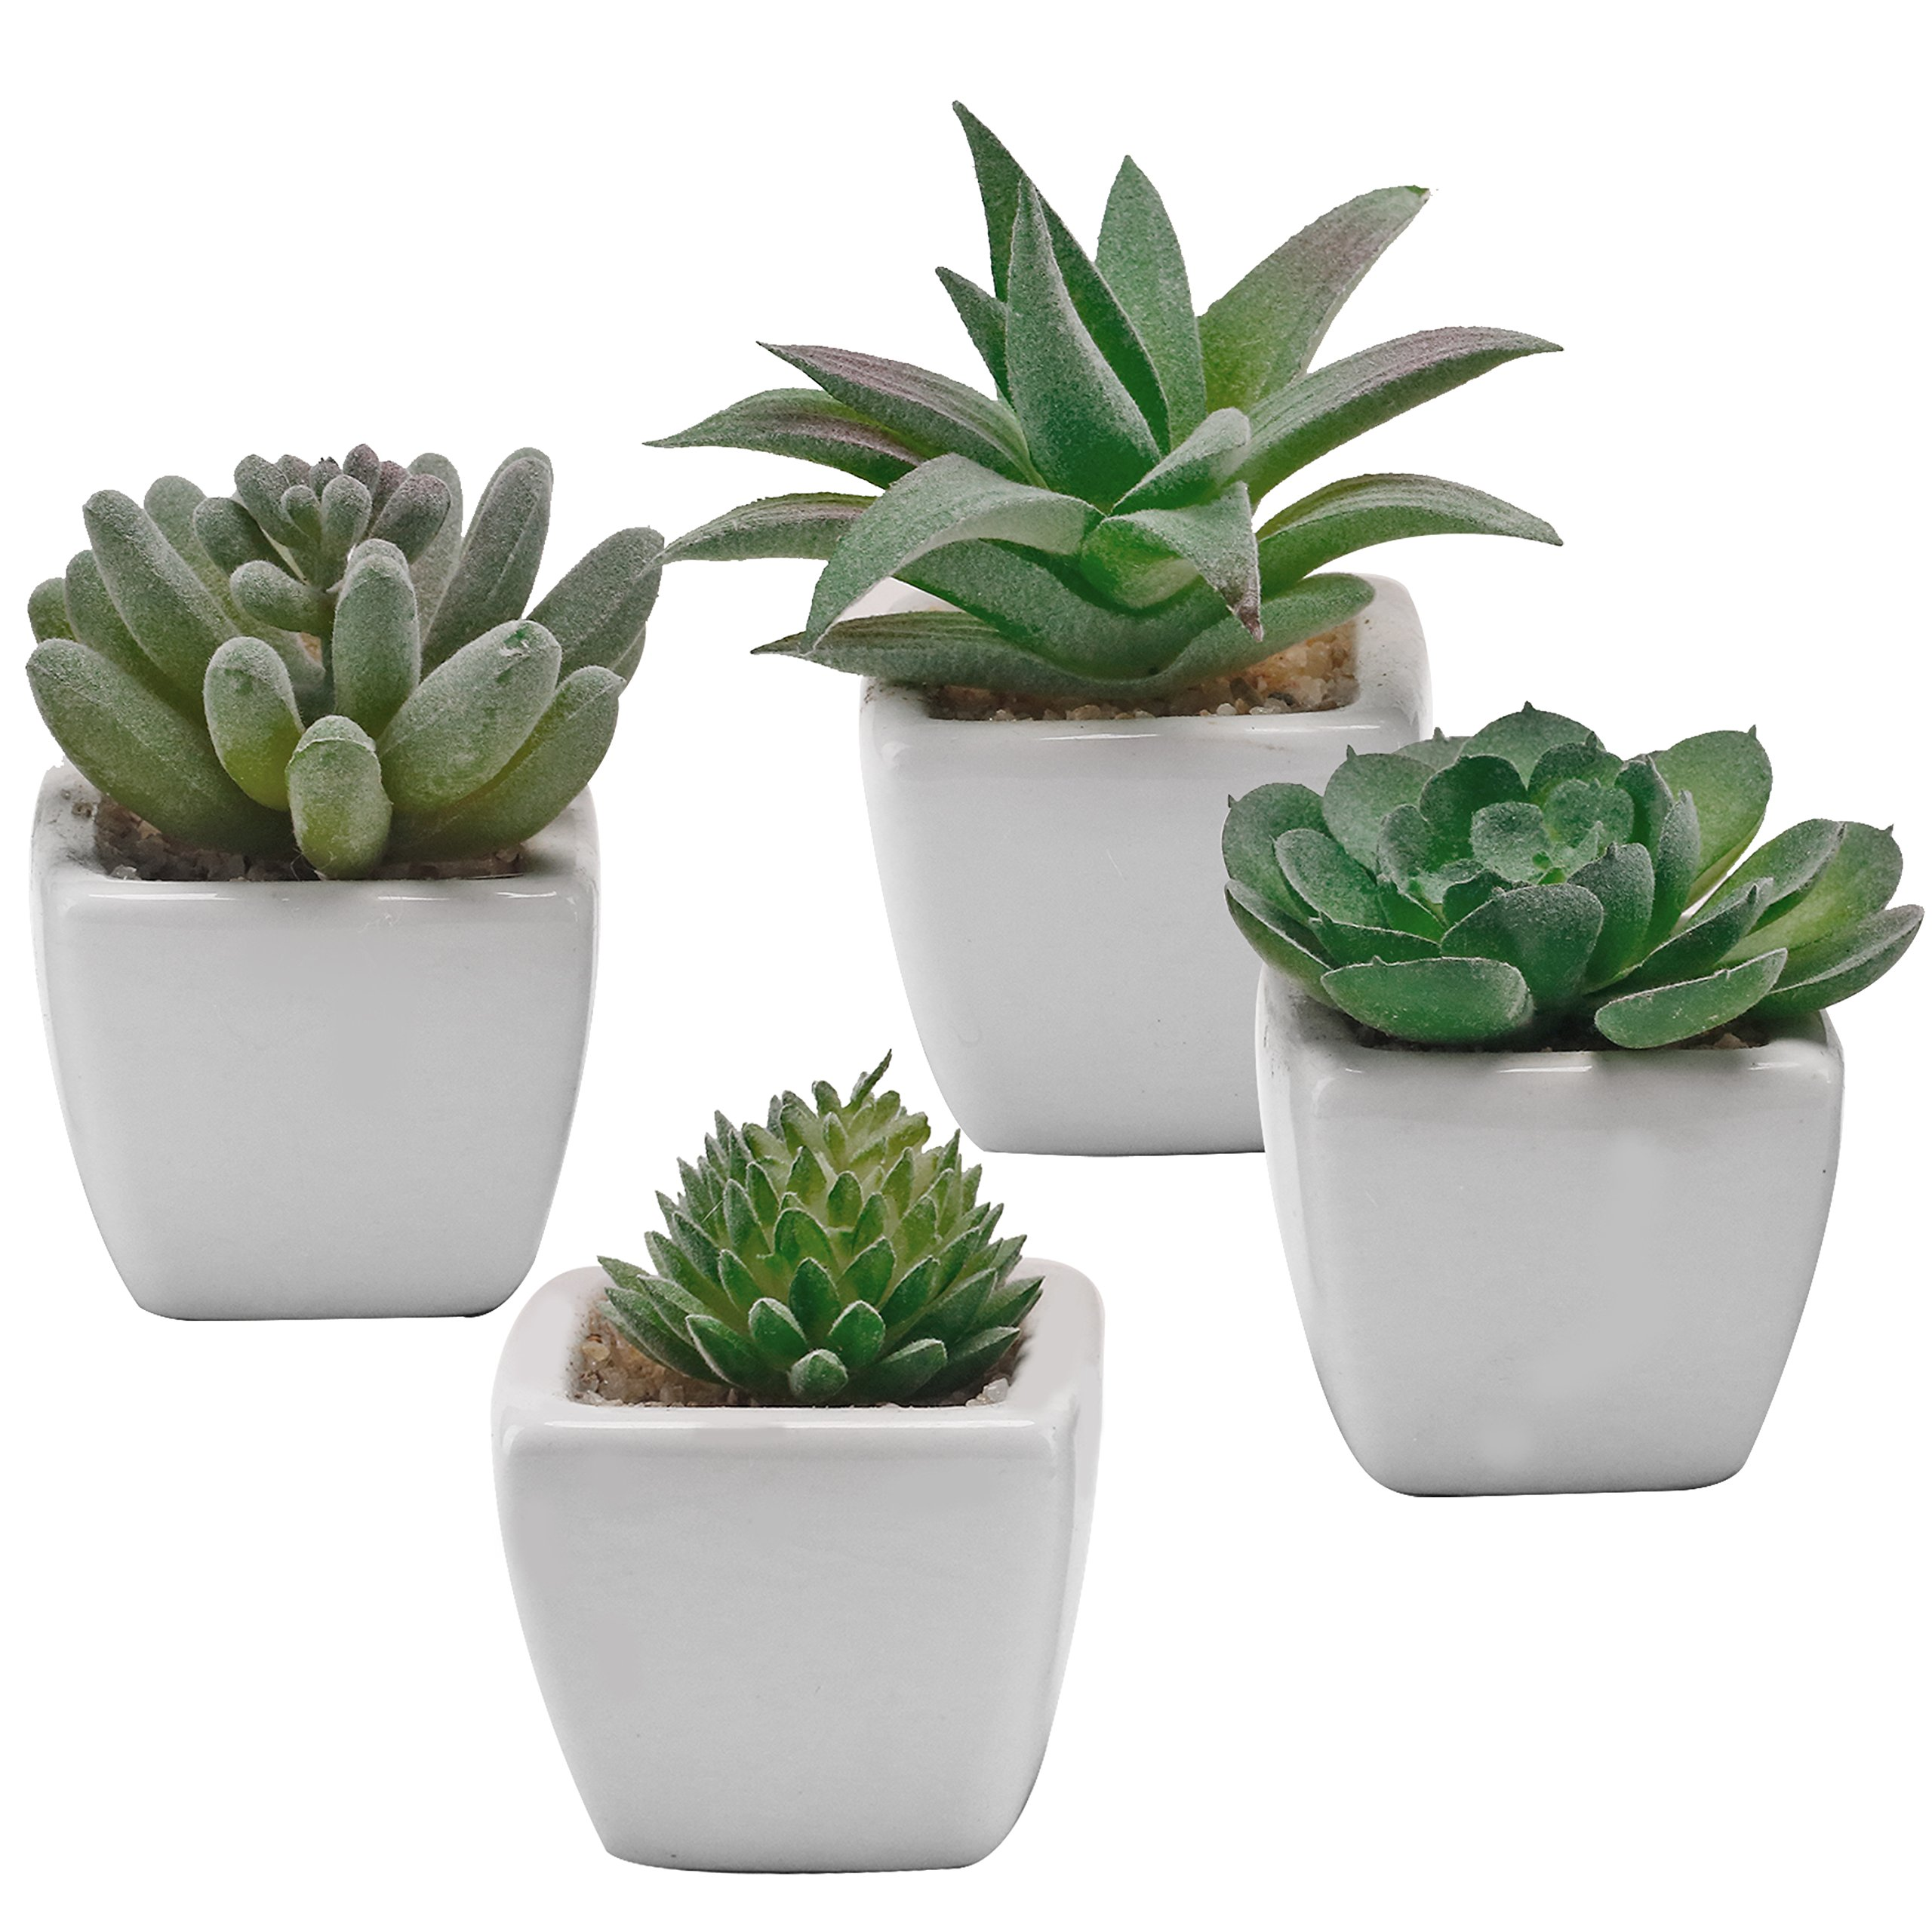 Miniature Mixed Artificial Succulent Plants in Square White Ceramic Planter Pots, Set of 4 by MyGift